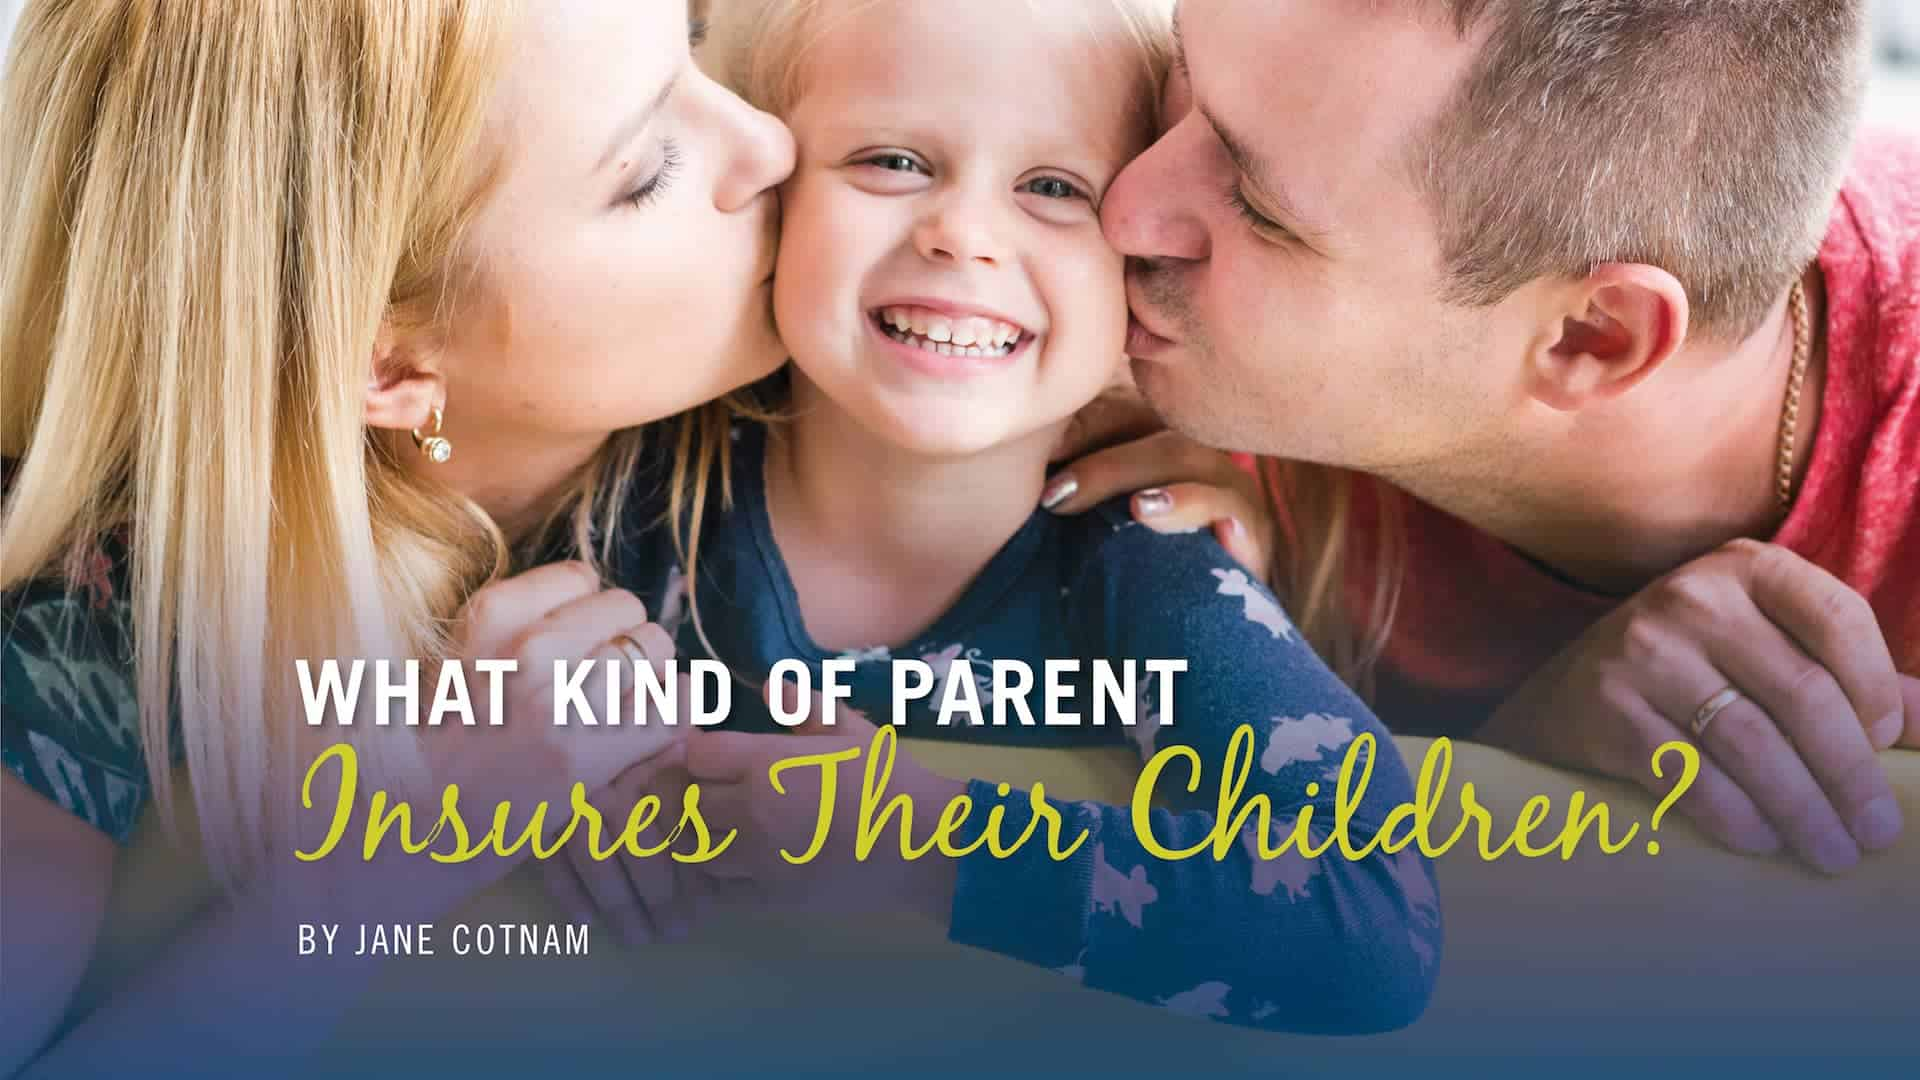 What kind of parent Insures Their Children?